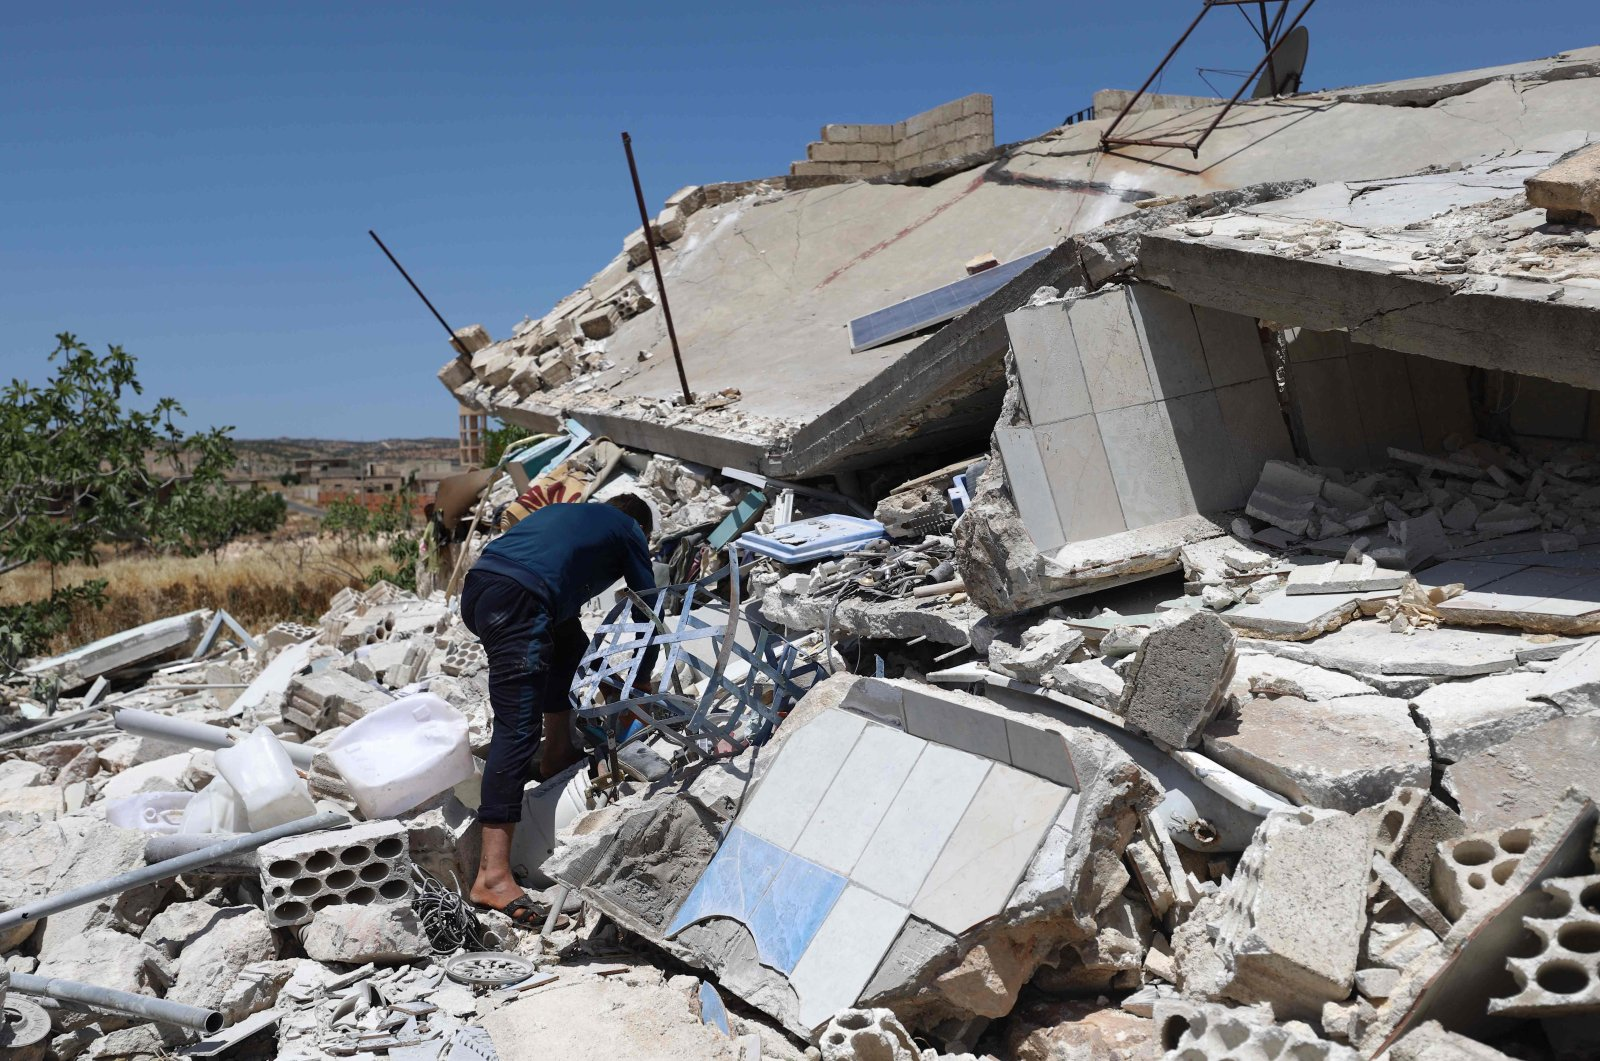 A man looks through the rubble of a destroyed house in the village of Iblin in the Jabal al-Zawiya region in northwestern Syria's Idlib province, June 10, 2021. (AFP Photo)